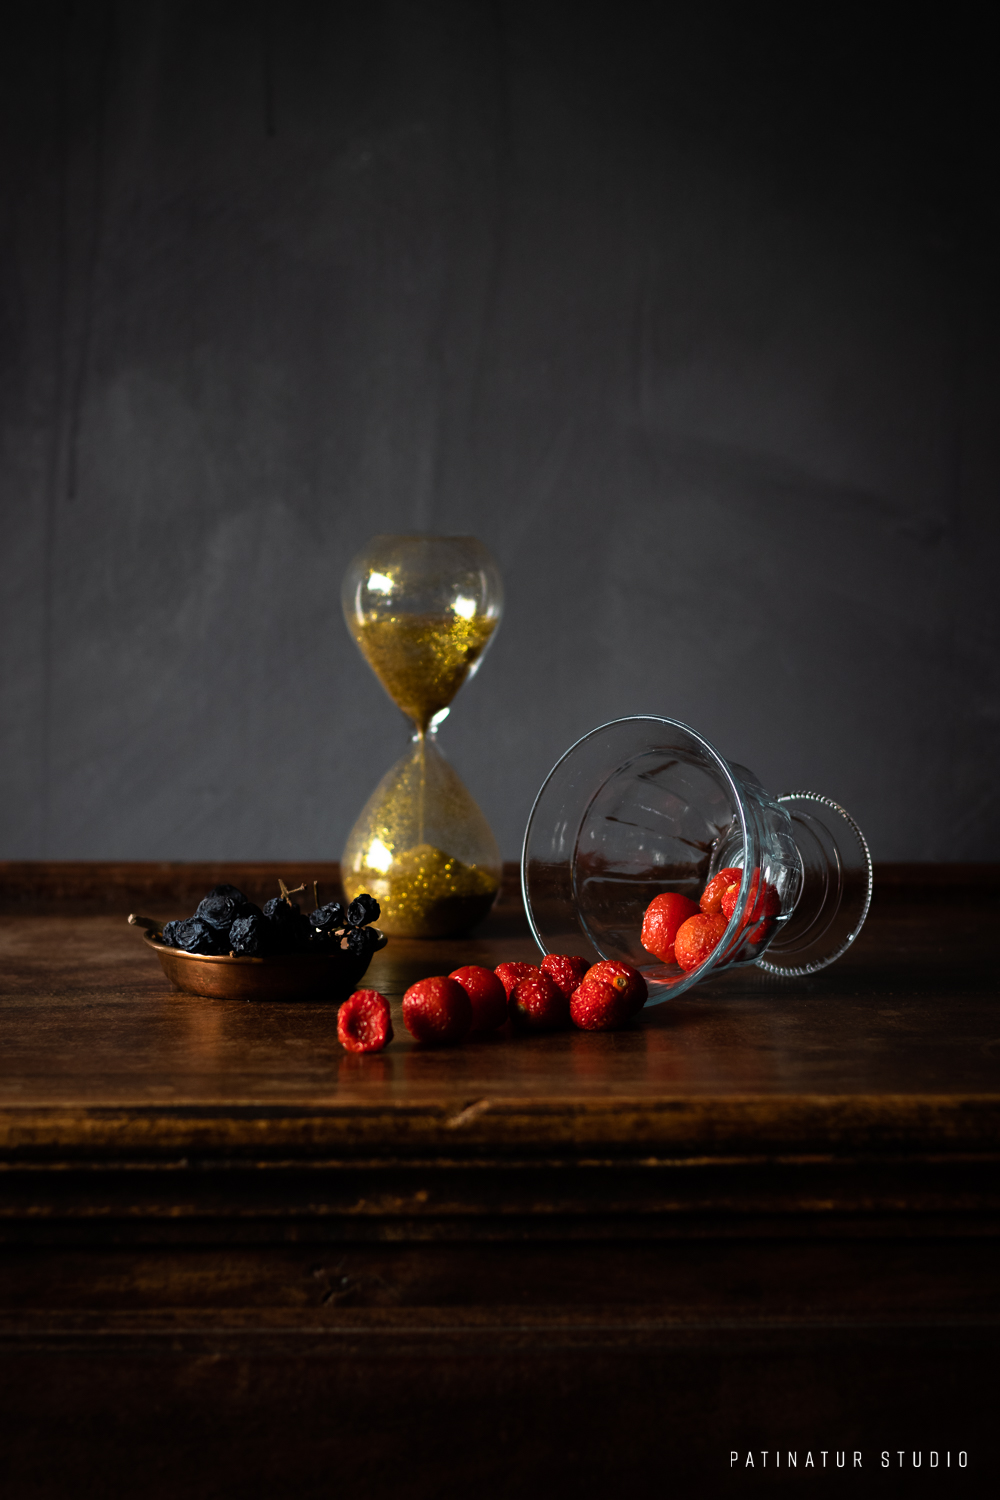 Photo Art | Dark and moody vanitas still life with hourglass and spolied cherry tomatoes and grapes.